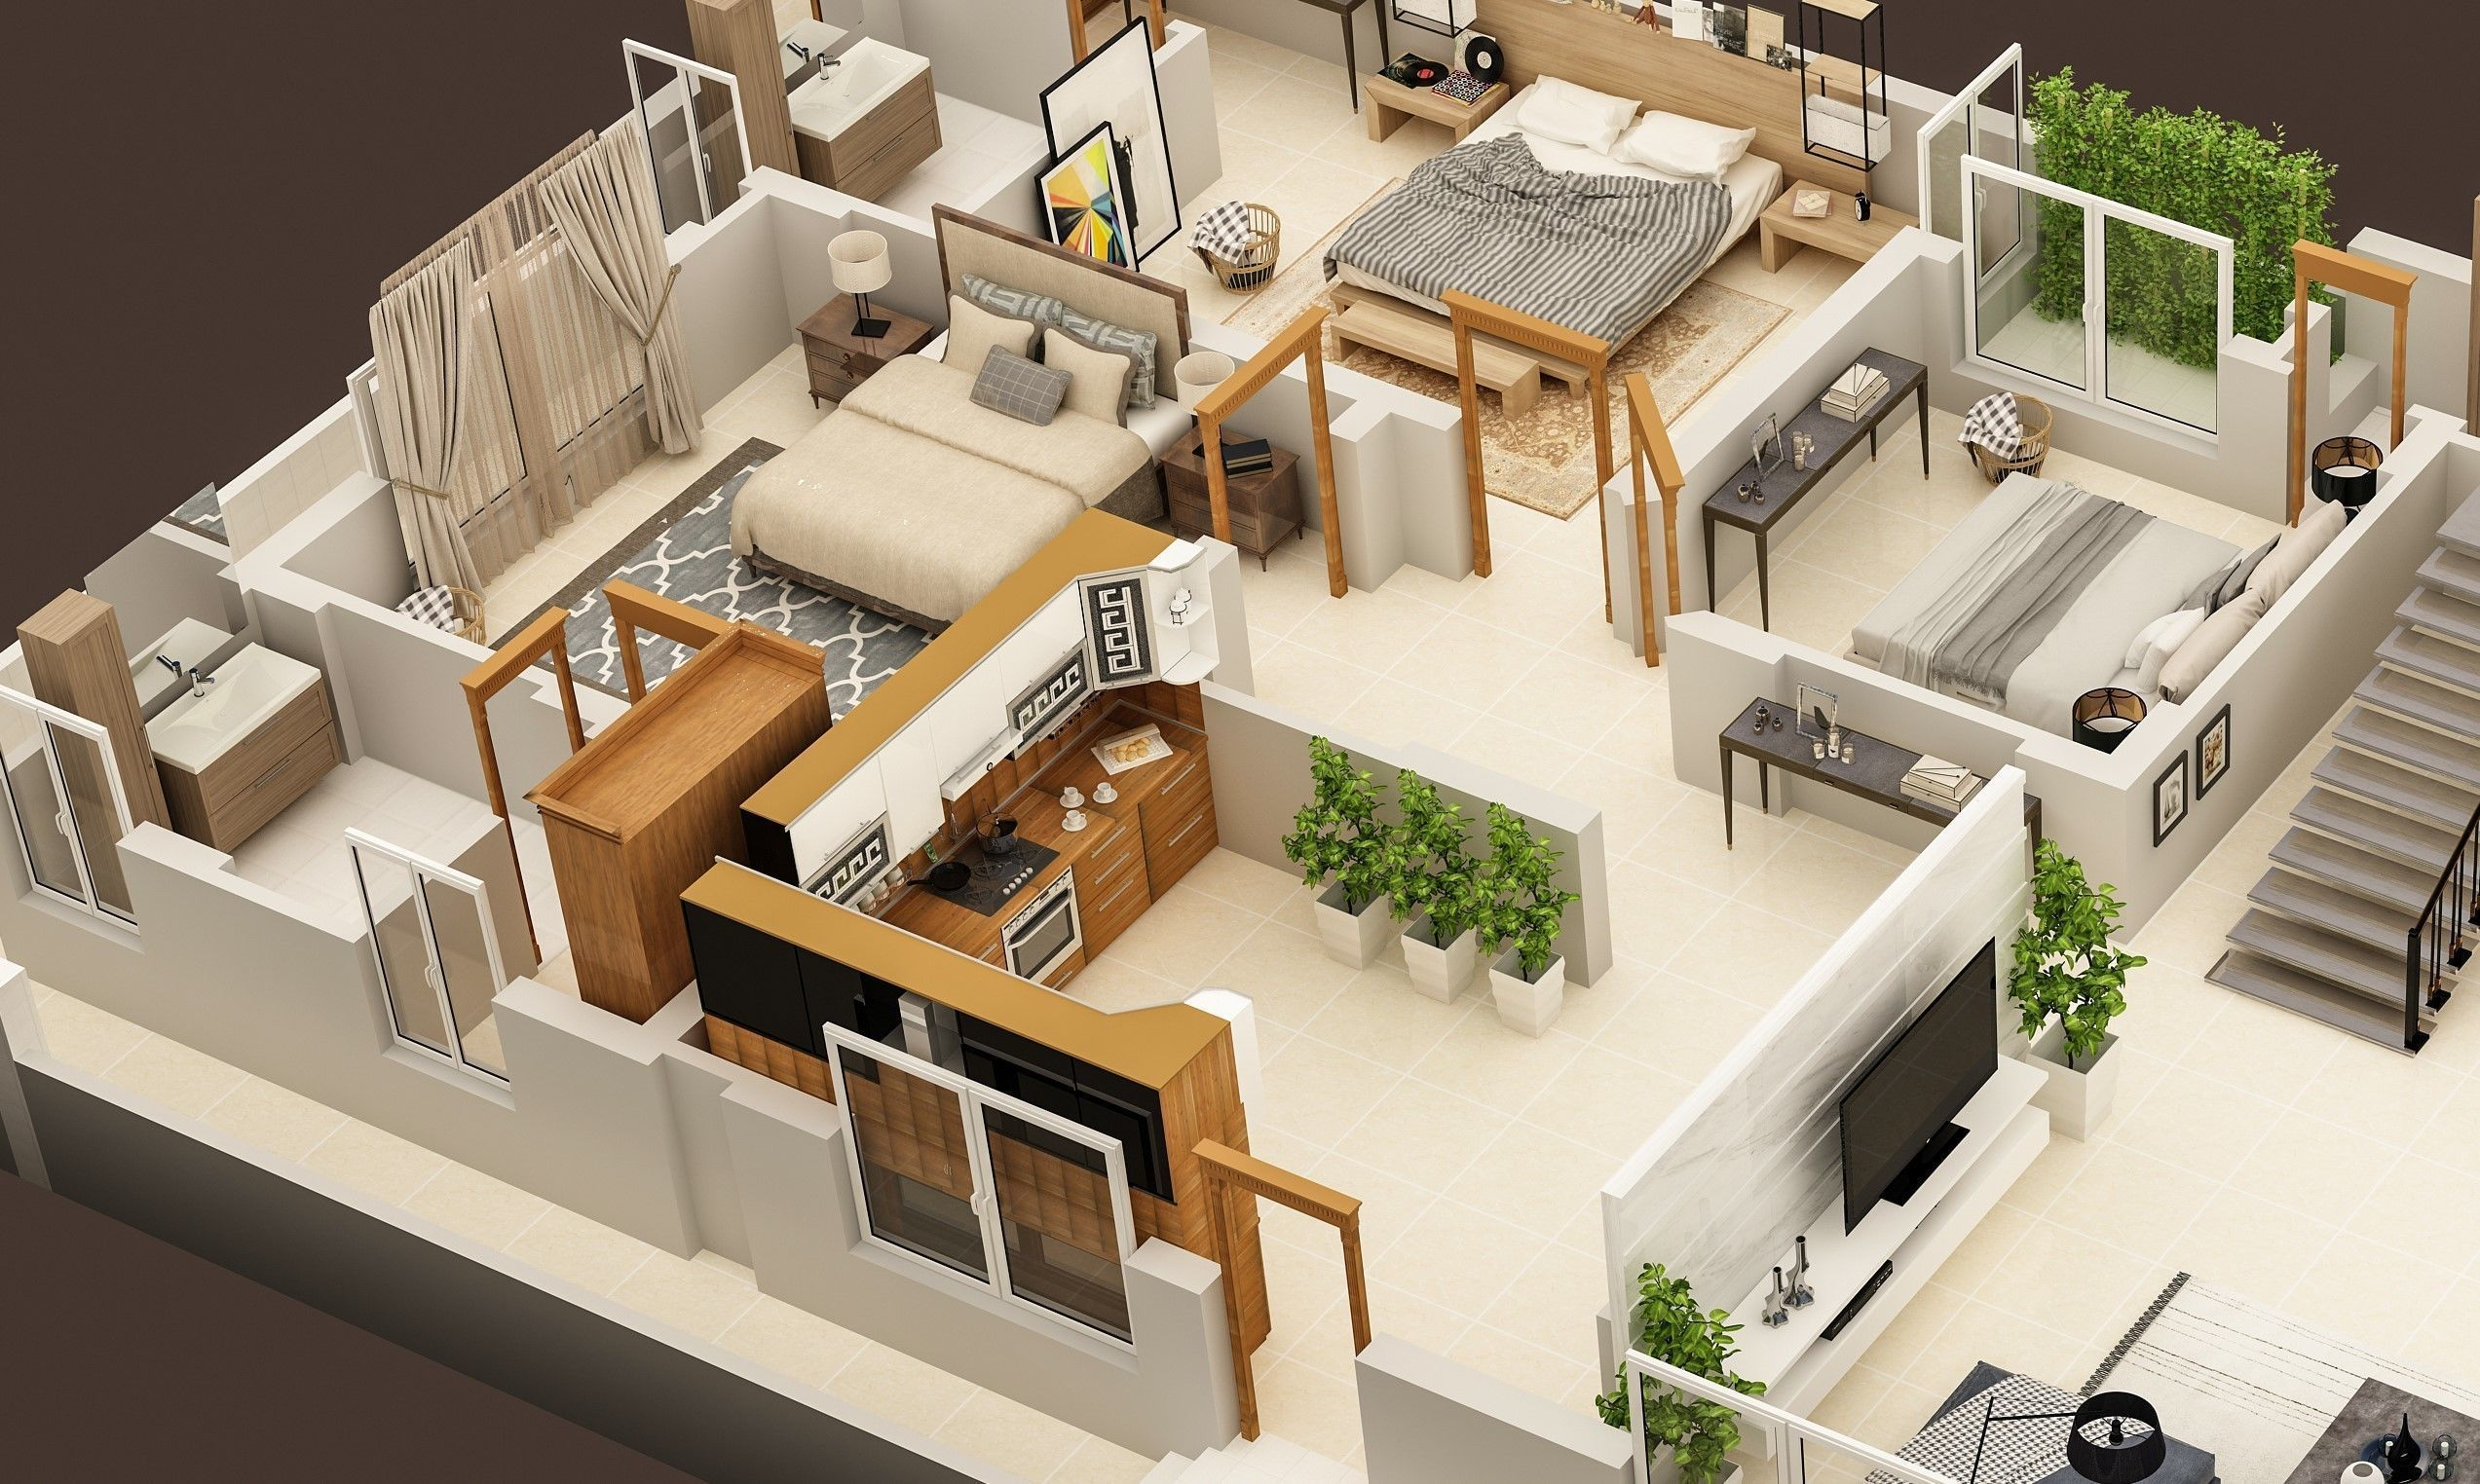 3d Floor Plan Of Ground Floor Of 1 Kanal Hosue Residence 3d